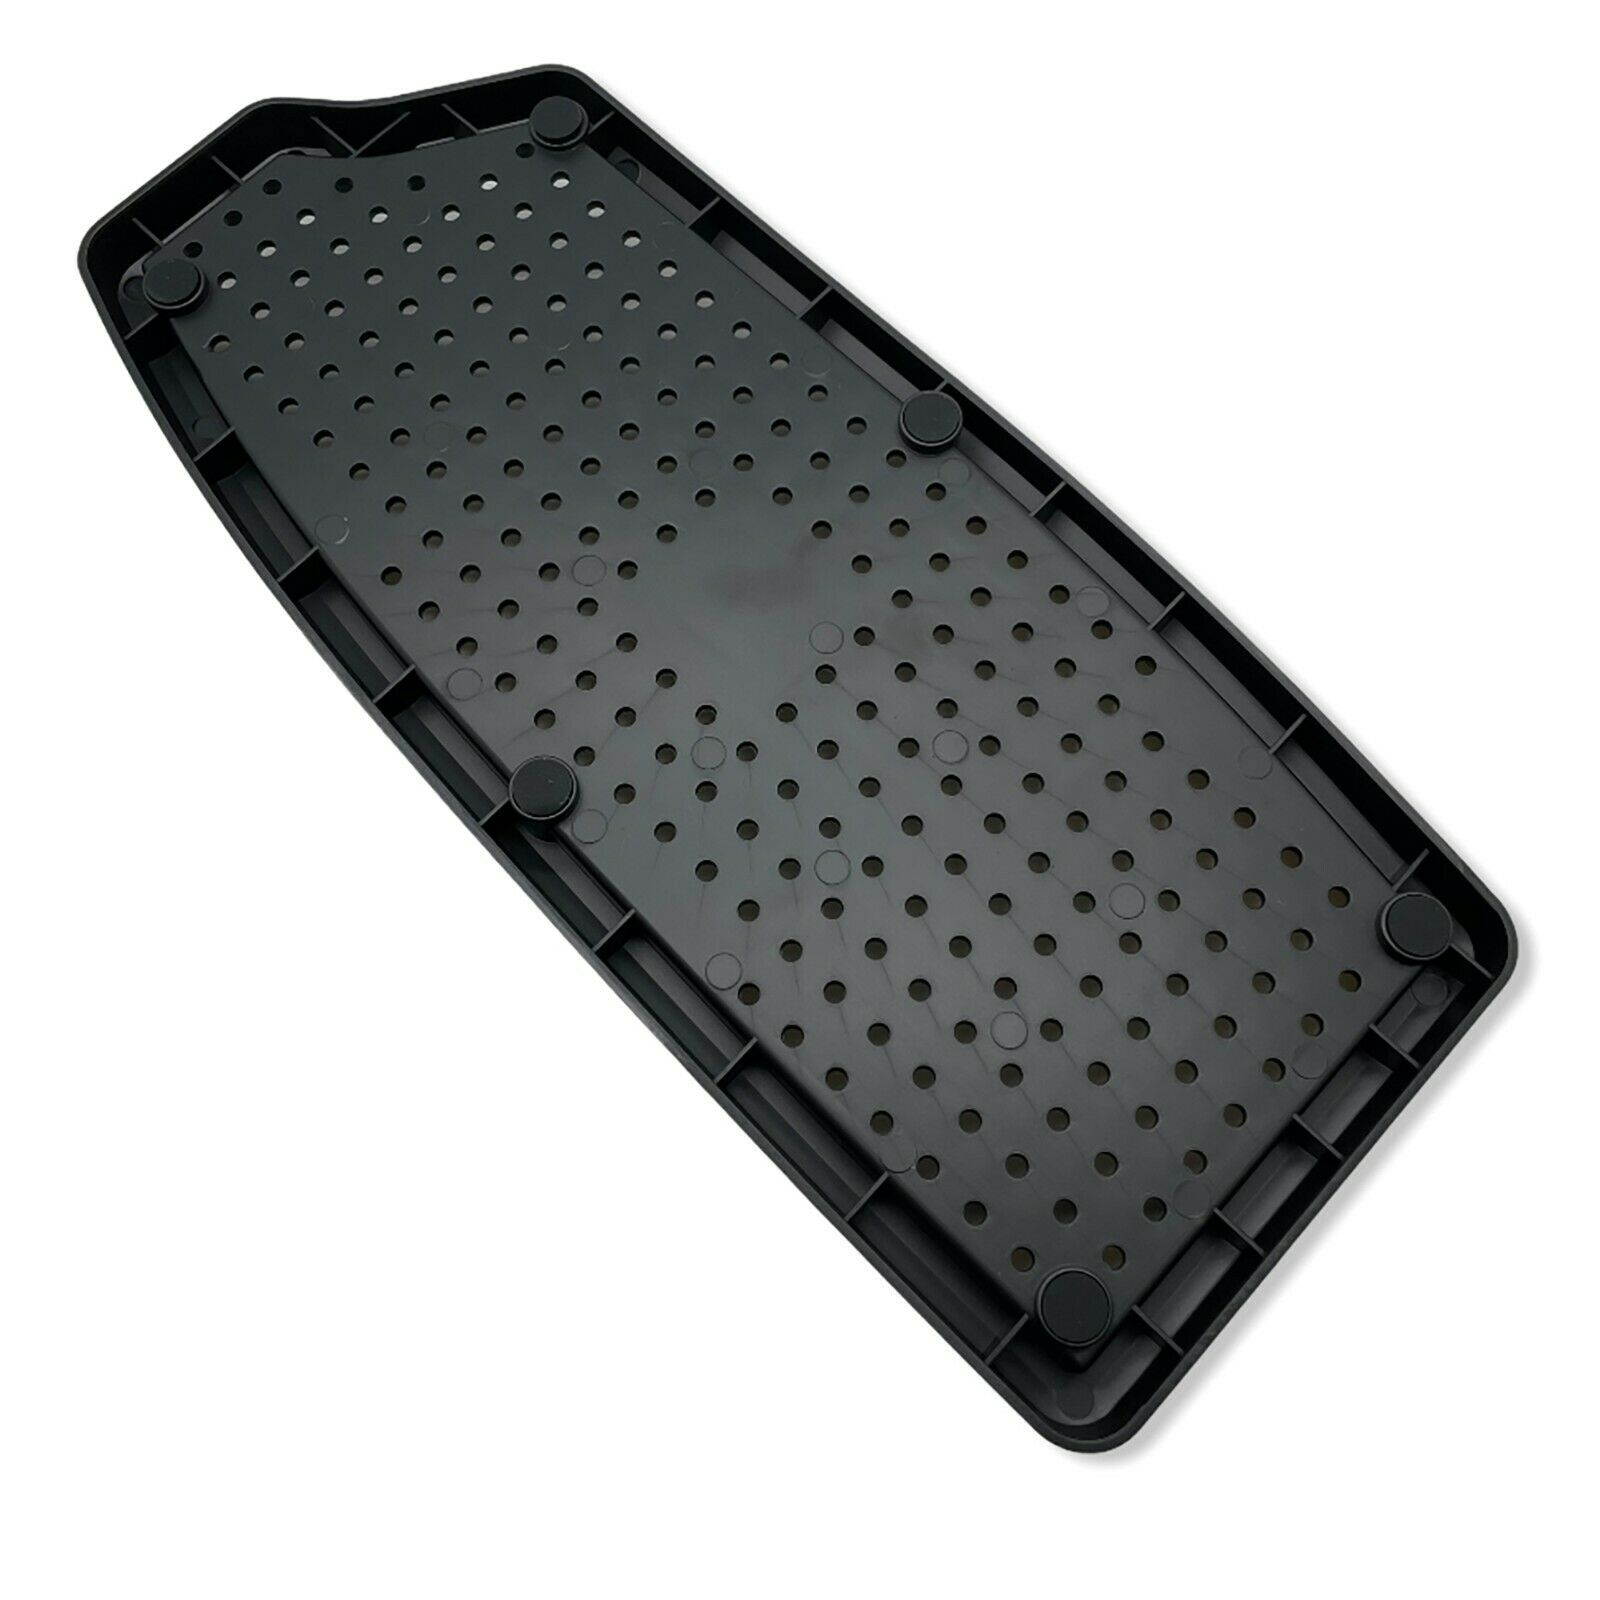 Vertical Stand with Built-in Cooling Vents for Sony PS5 Disc Console